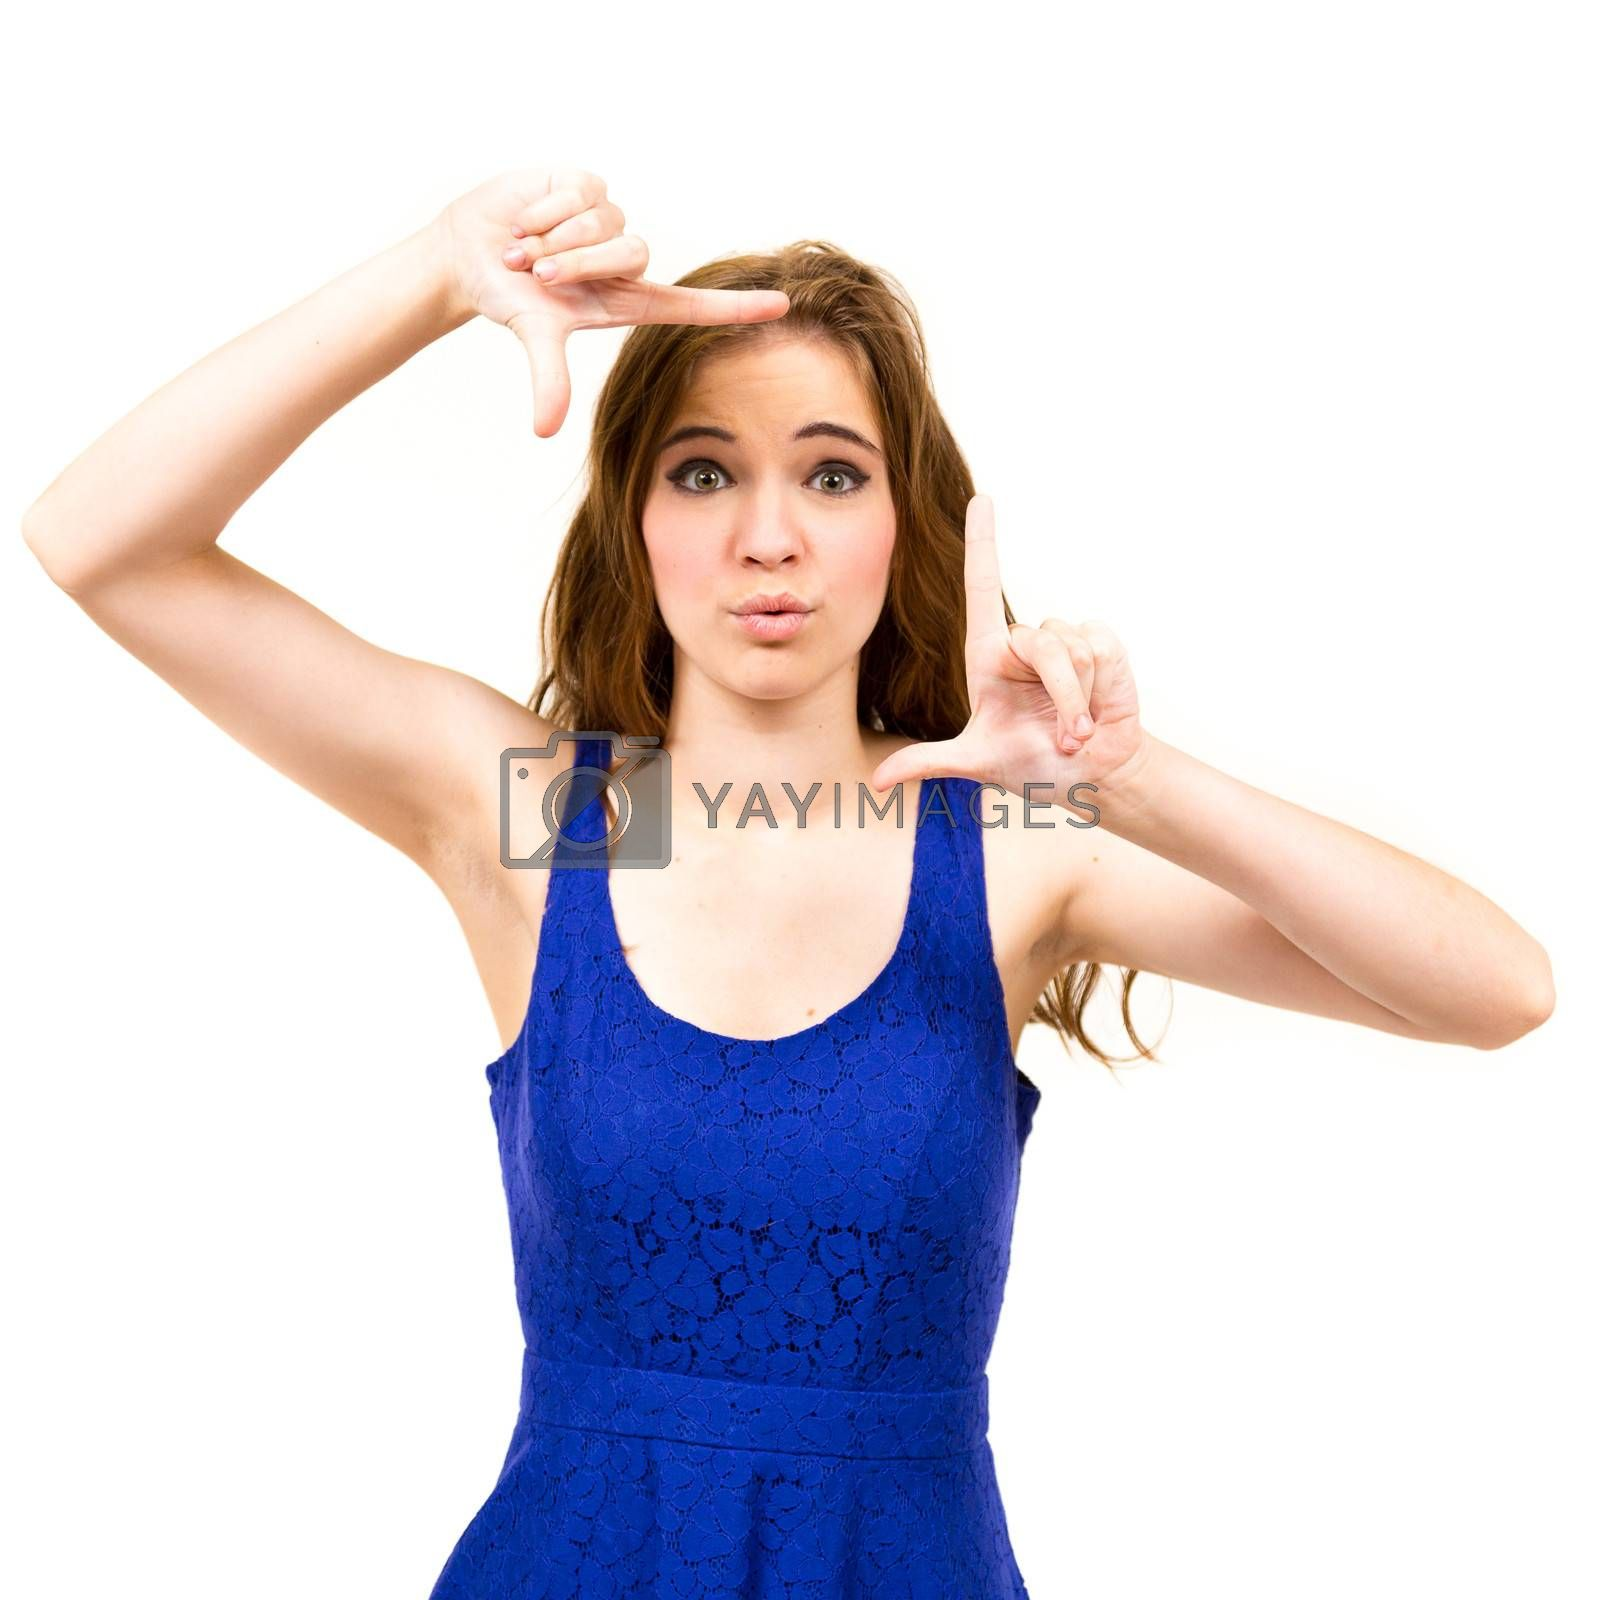 An attractive teen poses for a photo indoors in a lighting studio against a white background with a fashion style feel to the image.